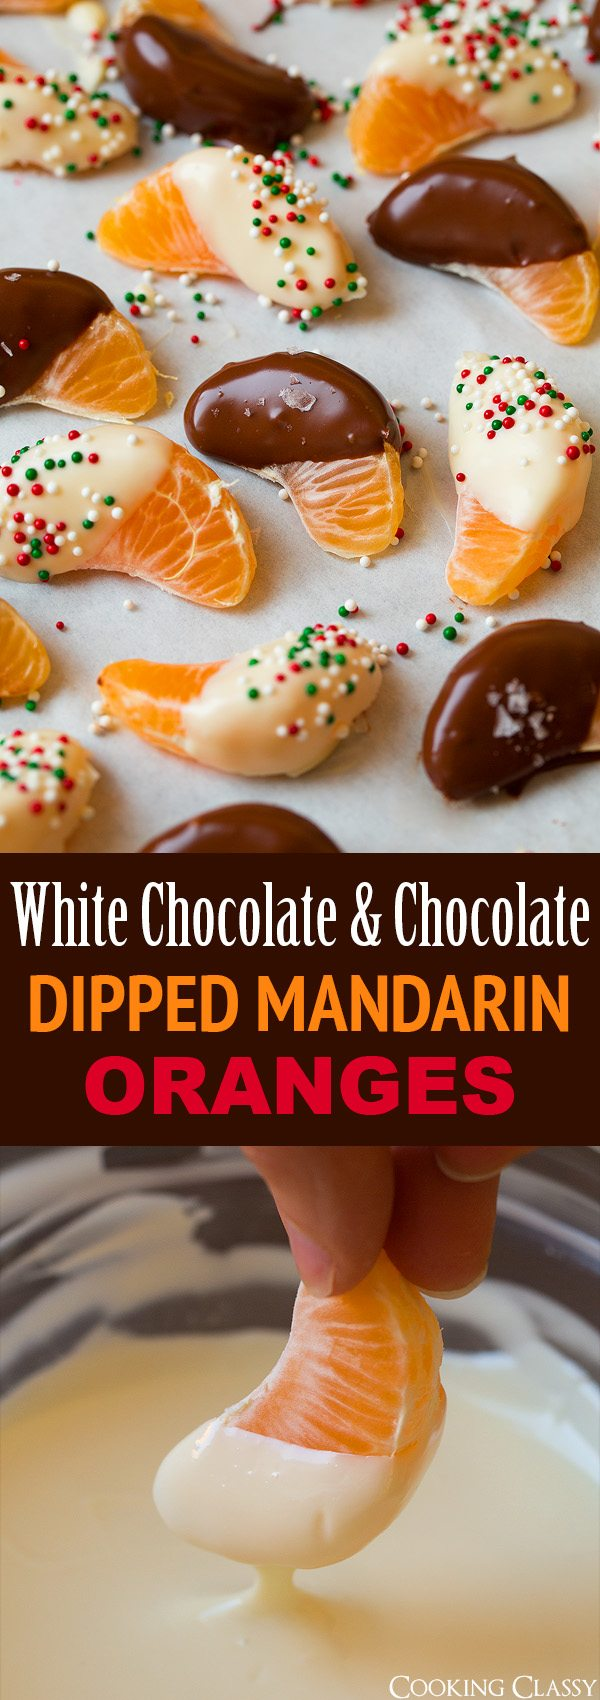 White Chocolate and Chocolate Dipped Mandarin Oranges | Cooking Classy